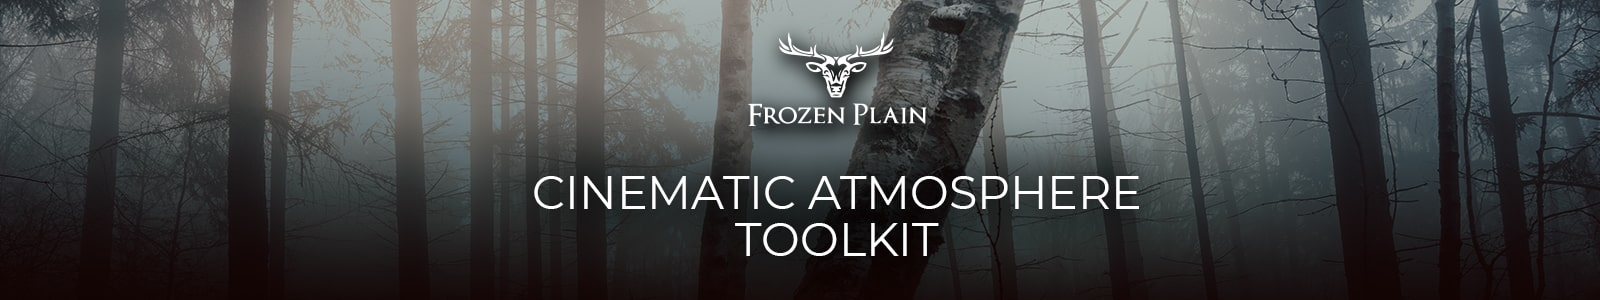 Cinematic Atmosphere Toolkit by frozen plain